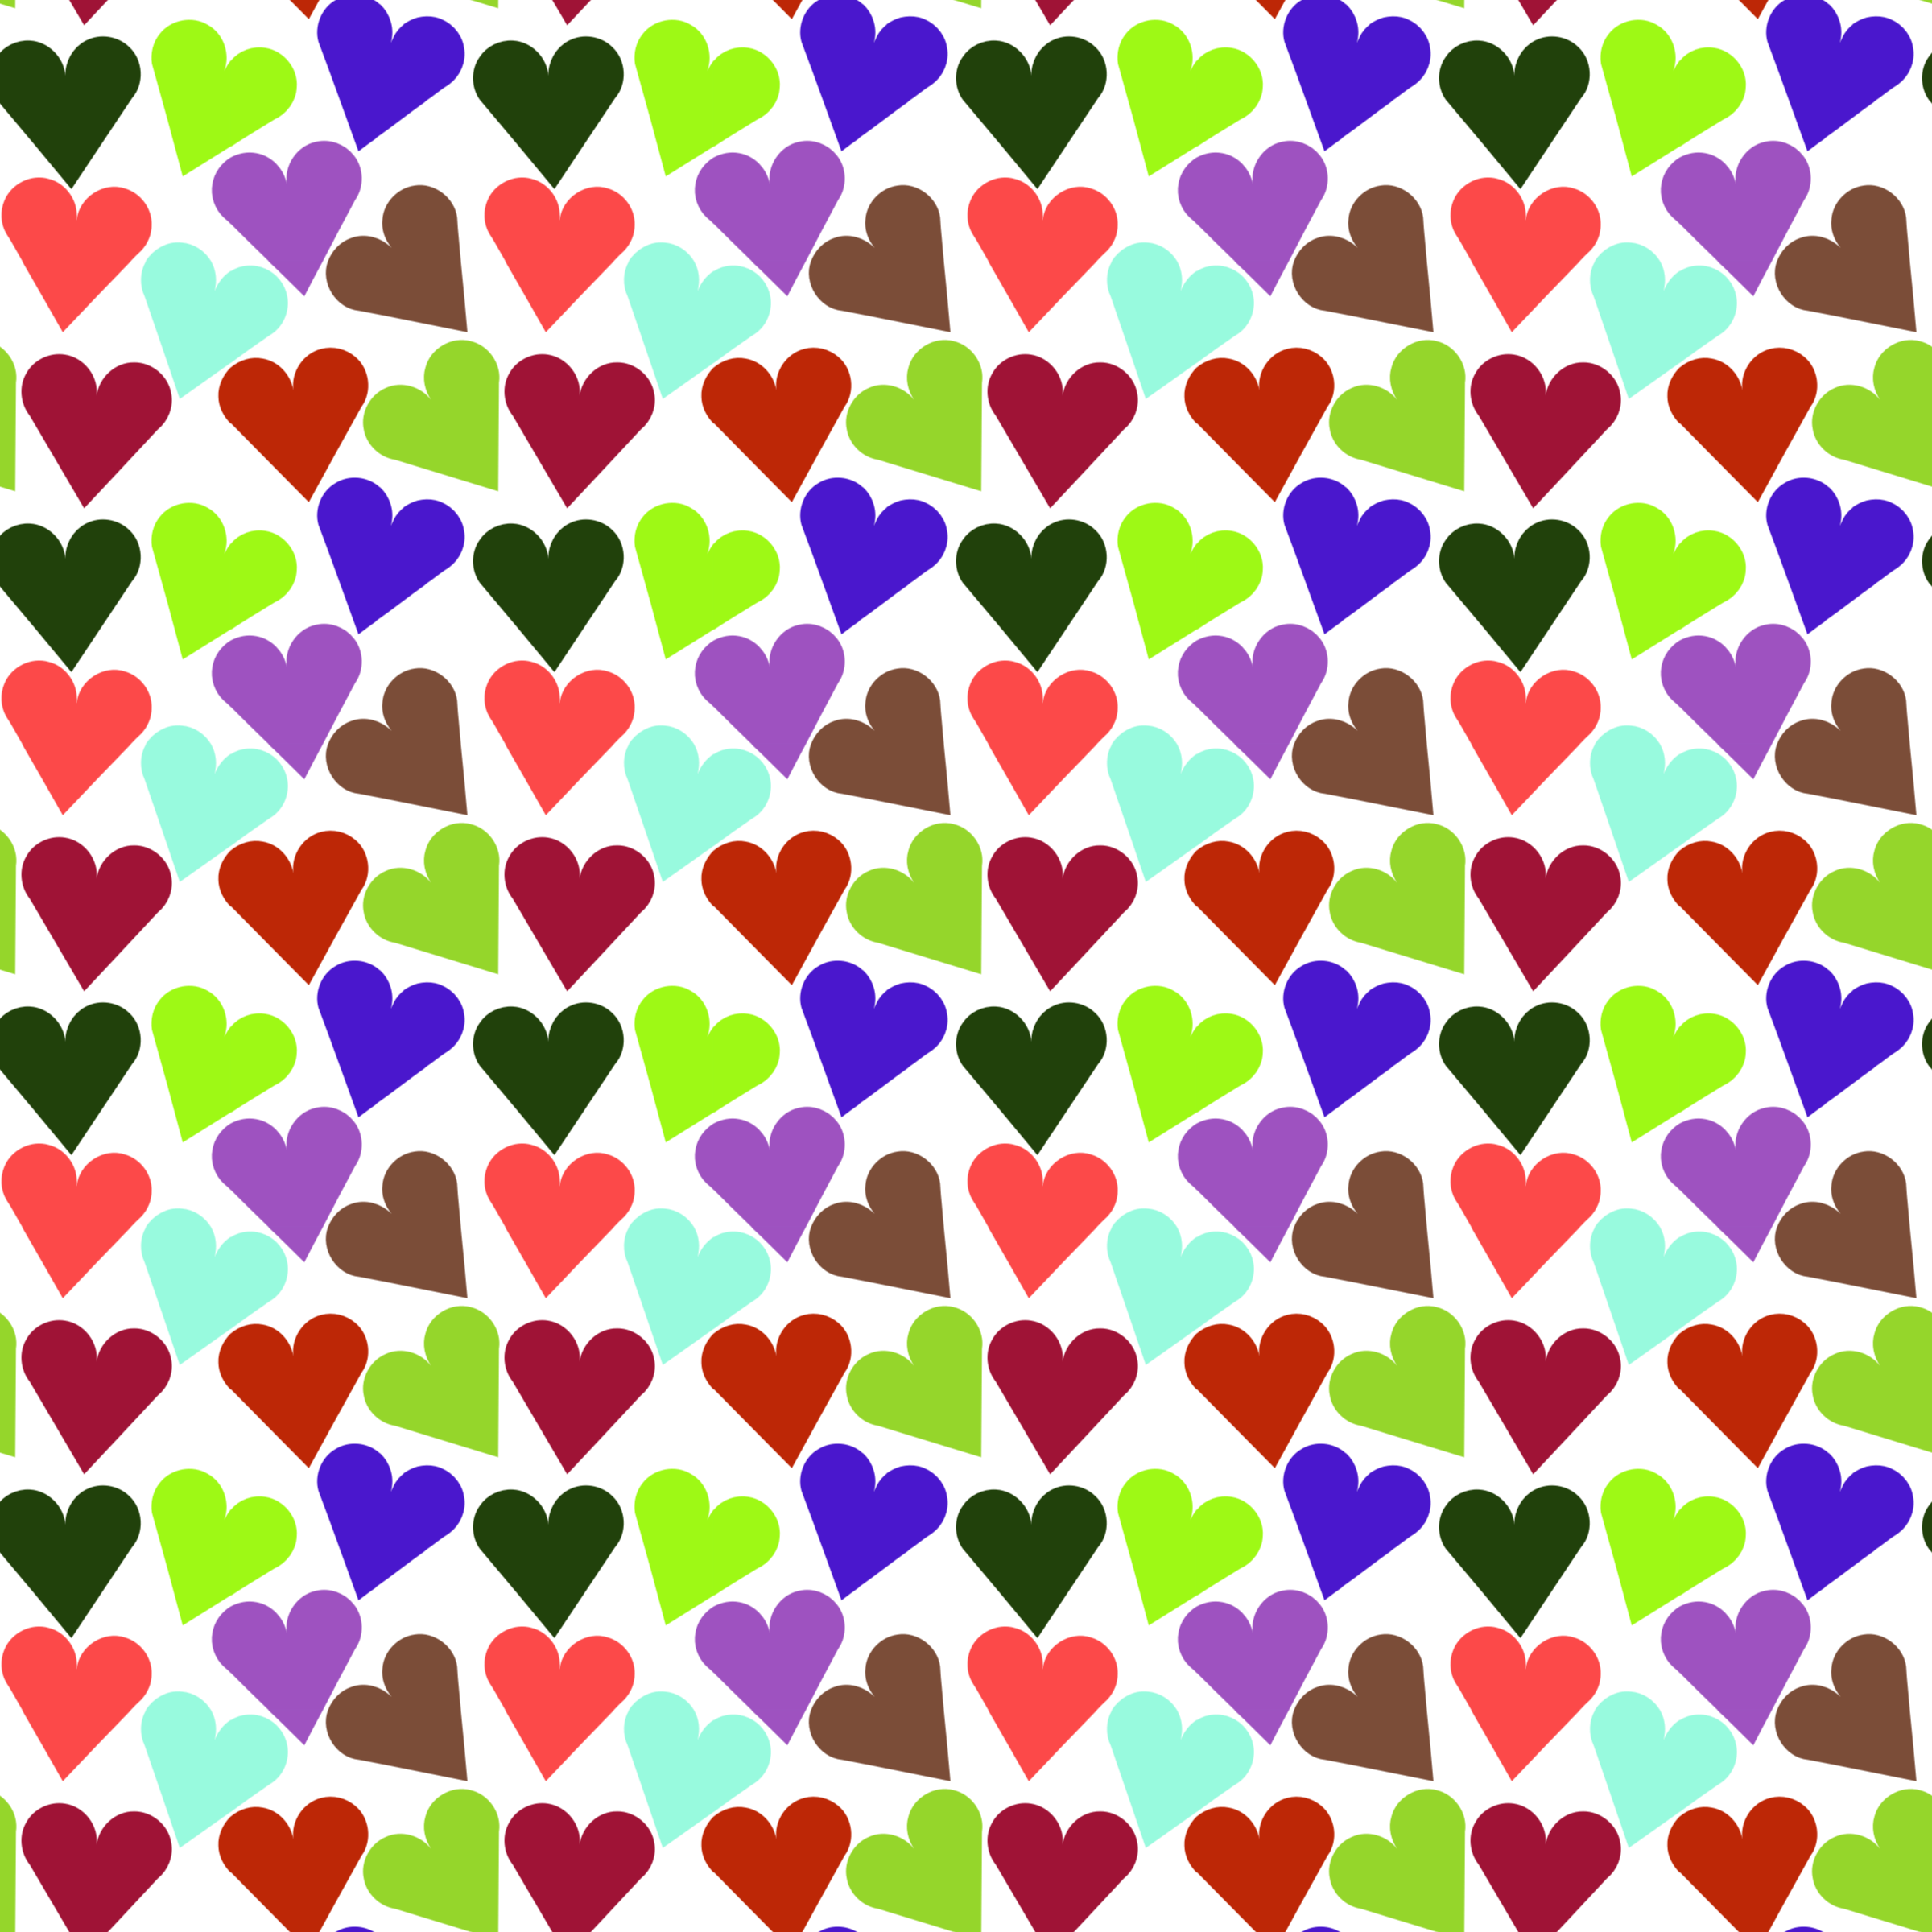 Heart pattern clipart freeuse download Clipart - Heart pattern freeuse download